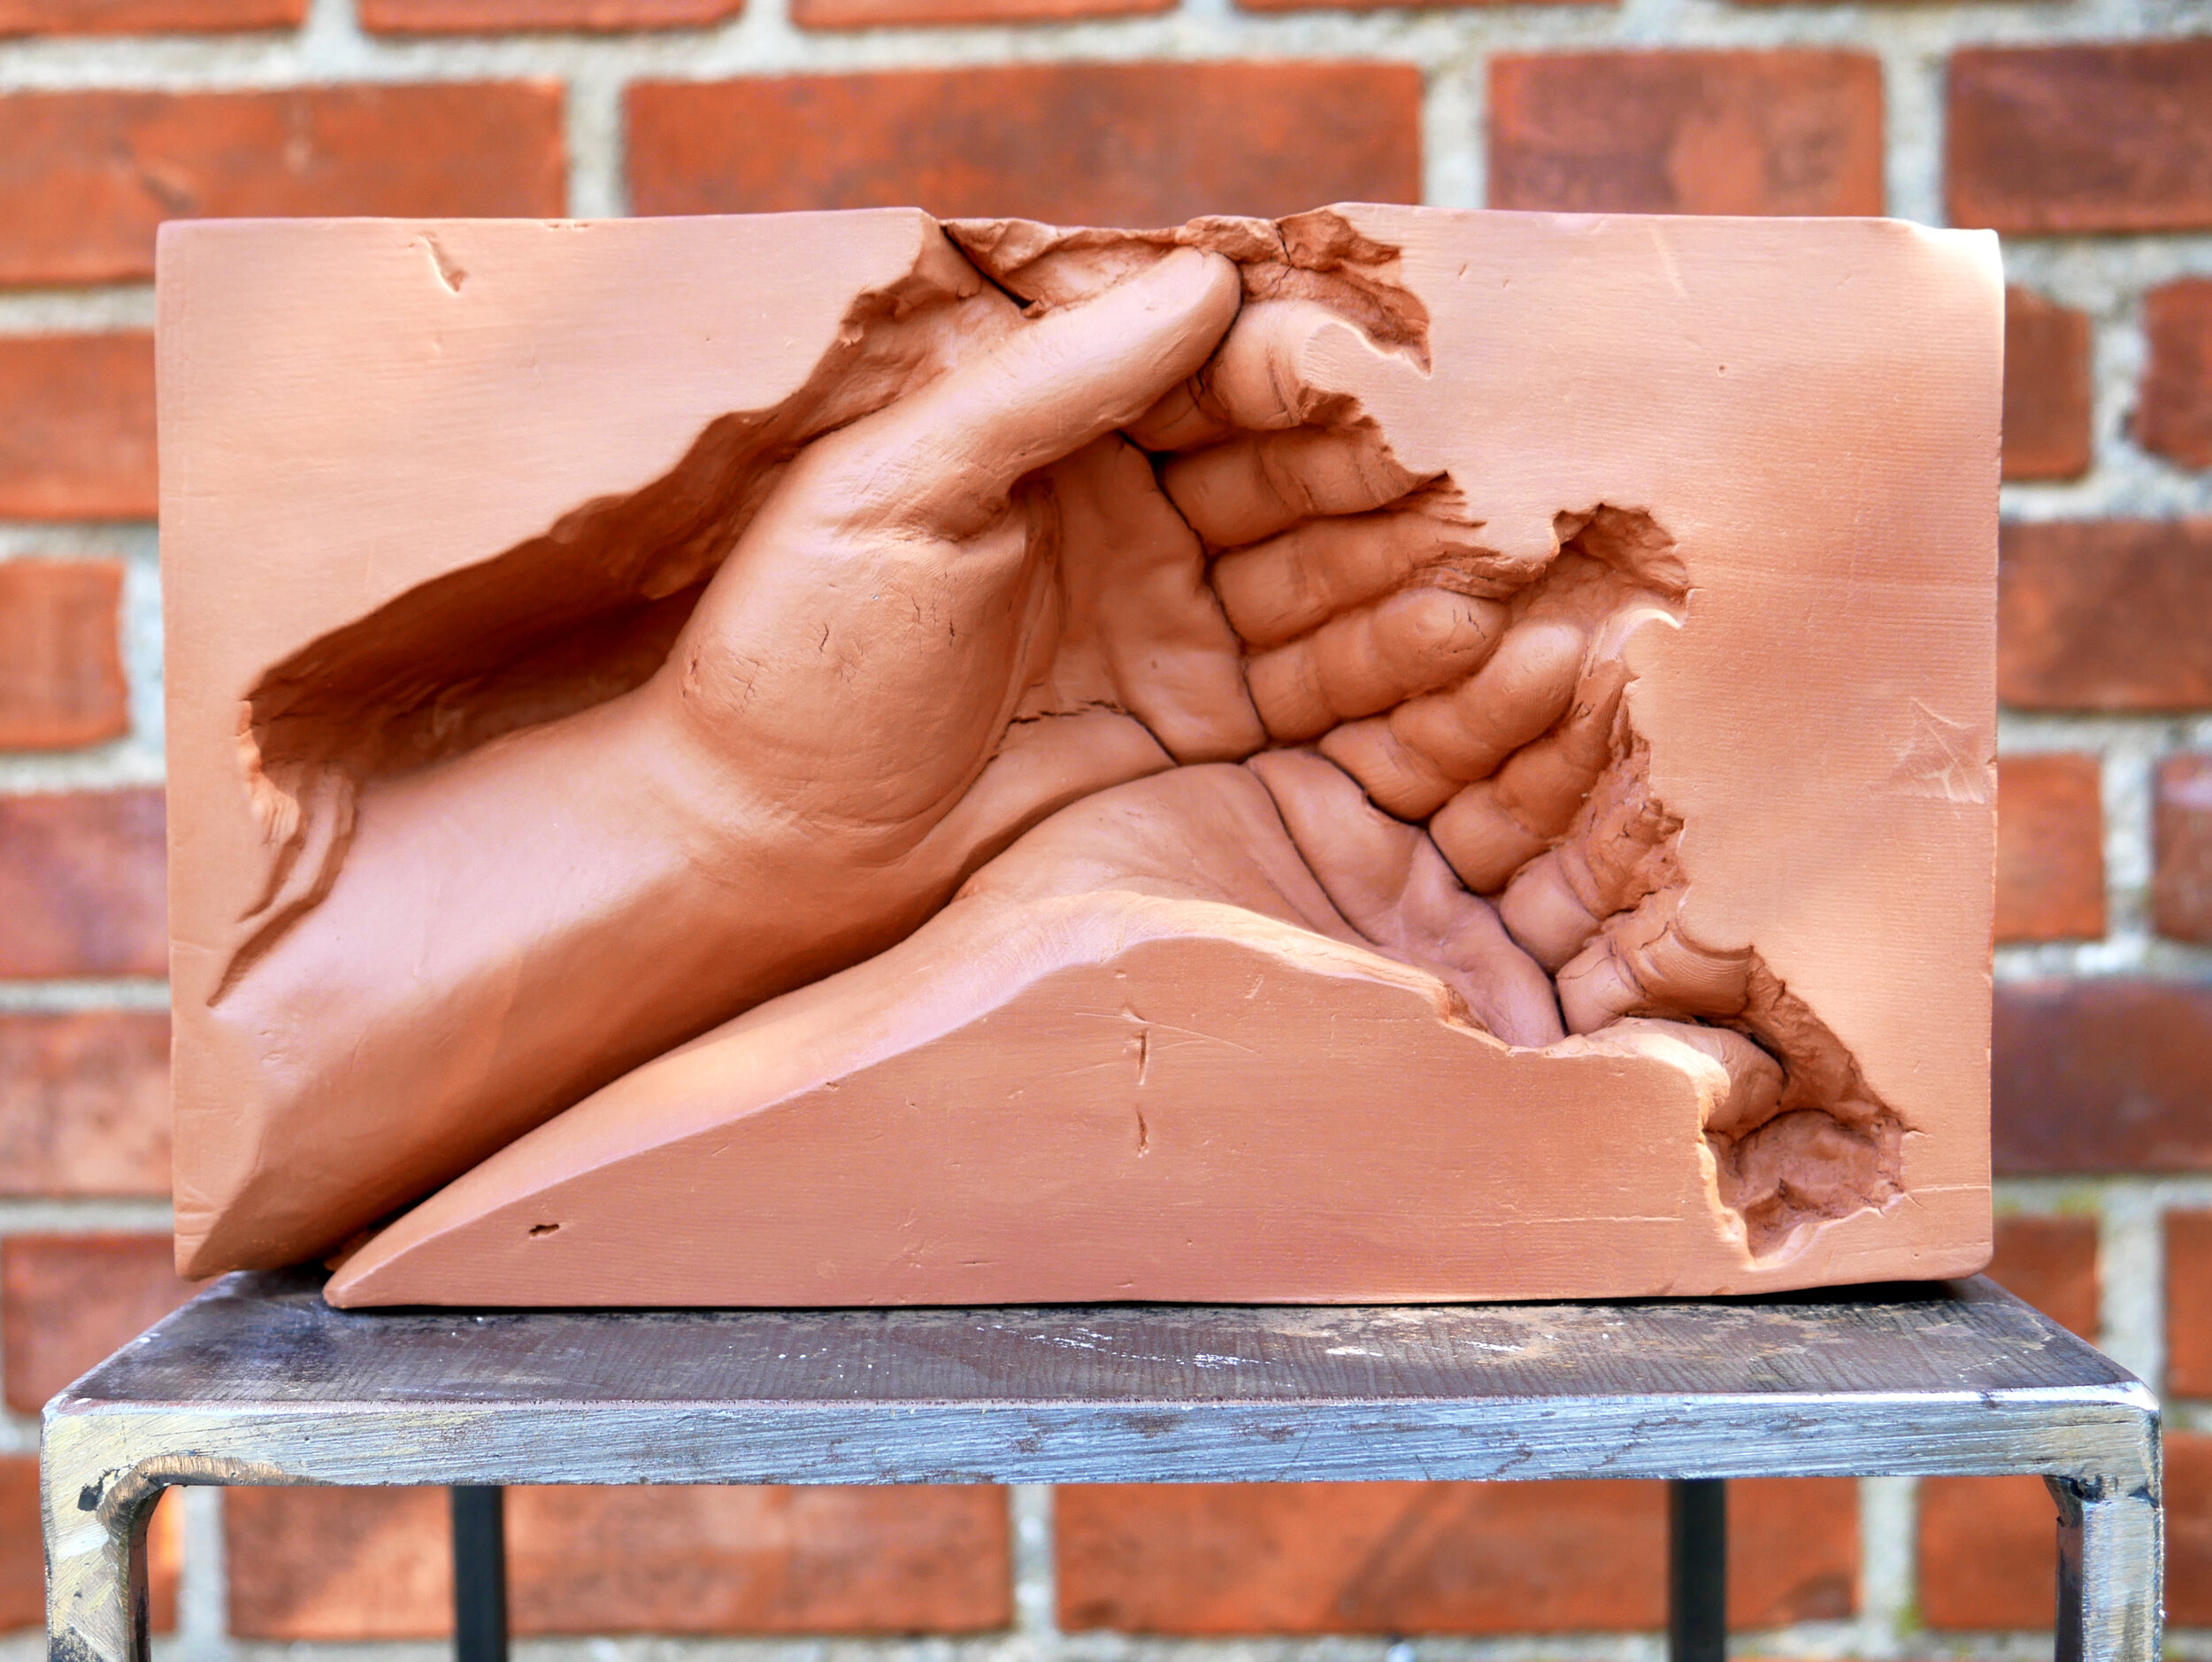 2.Dan Stockholm, By hand, 2018, 24,5x14,5x7,5cm. Unfired red clay.jpg